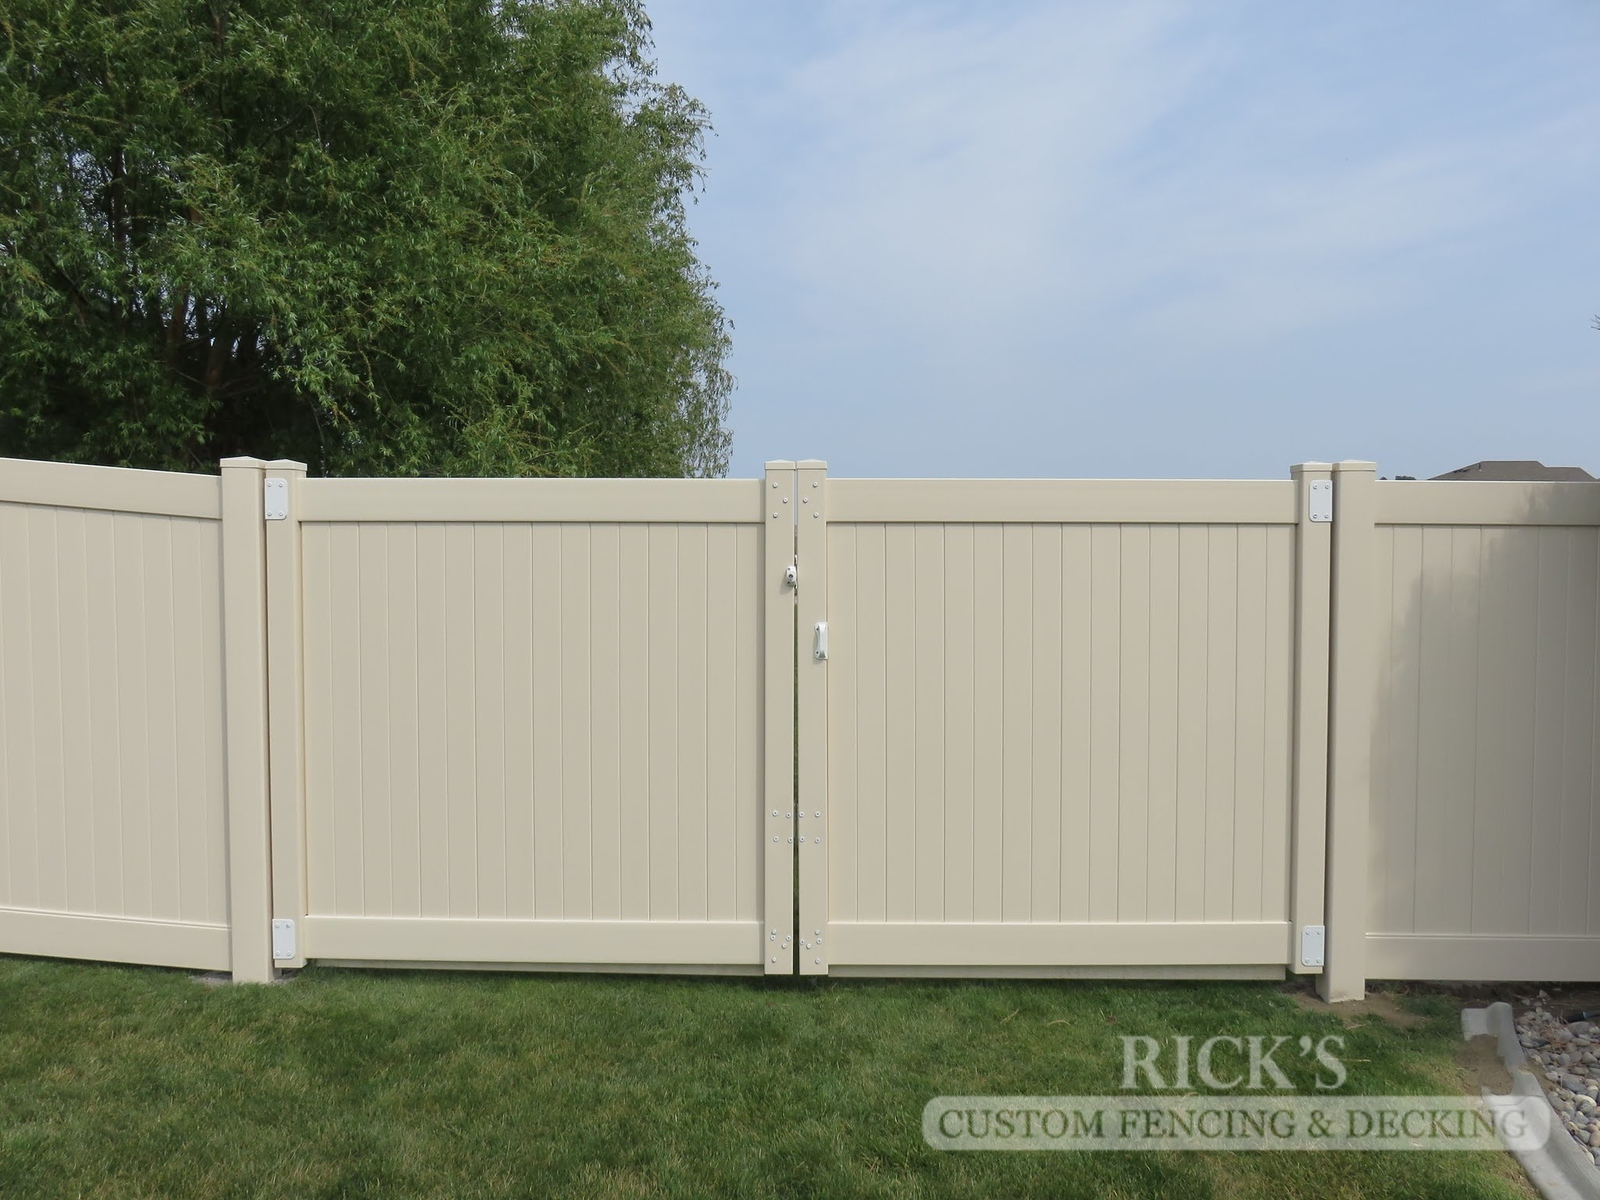 3019 - Vinyl Privacy Fencing